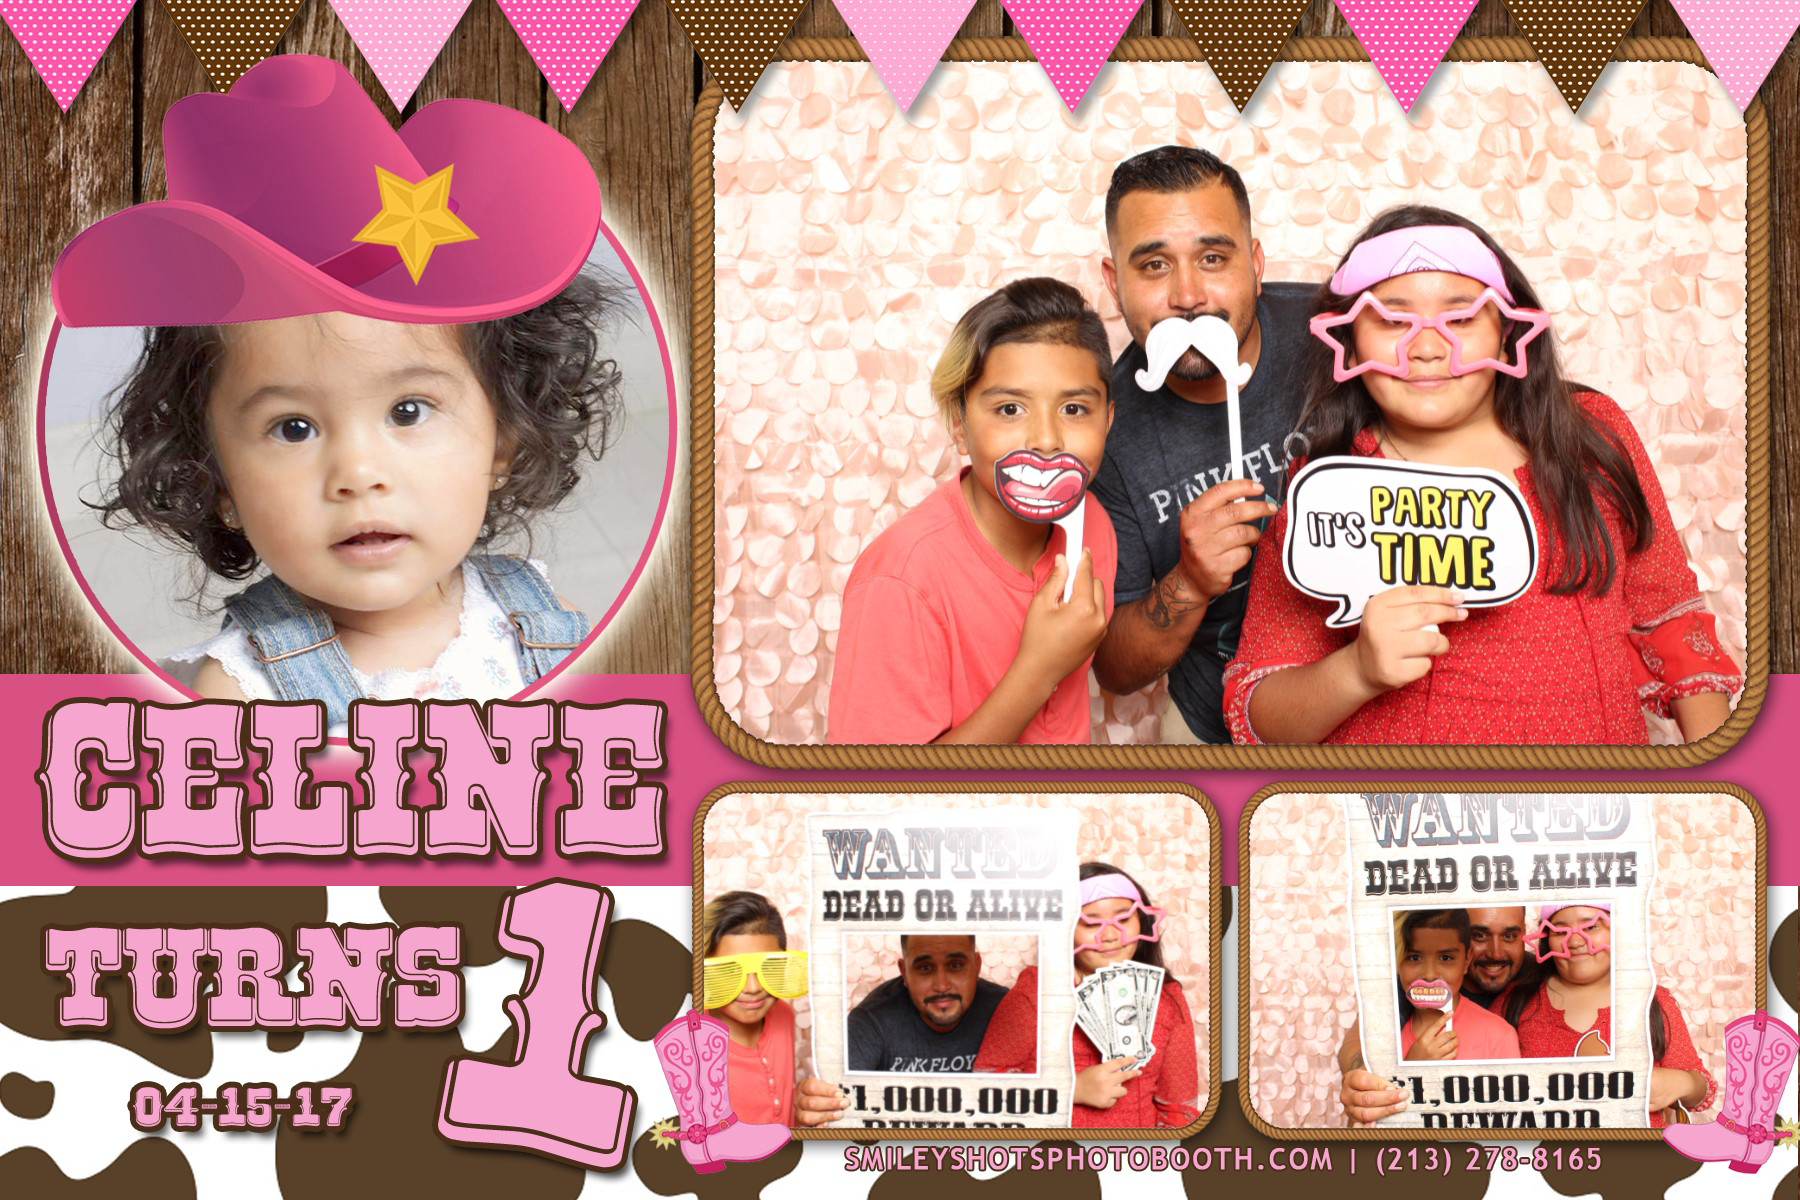 Celine turns 1 Smiley Shots Photo Booth Photobooth (41).png